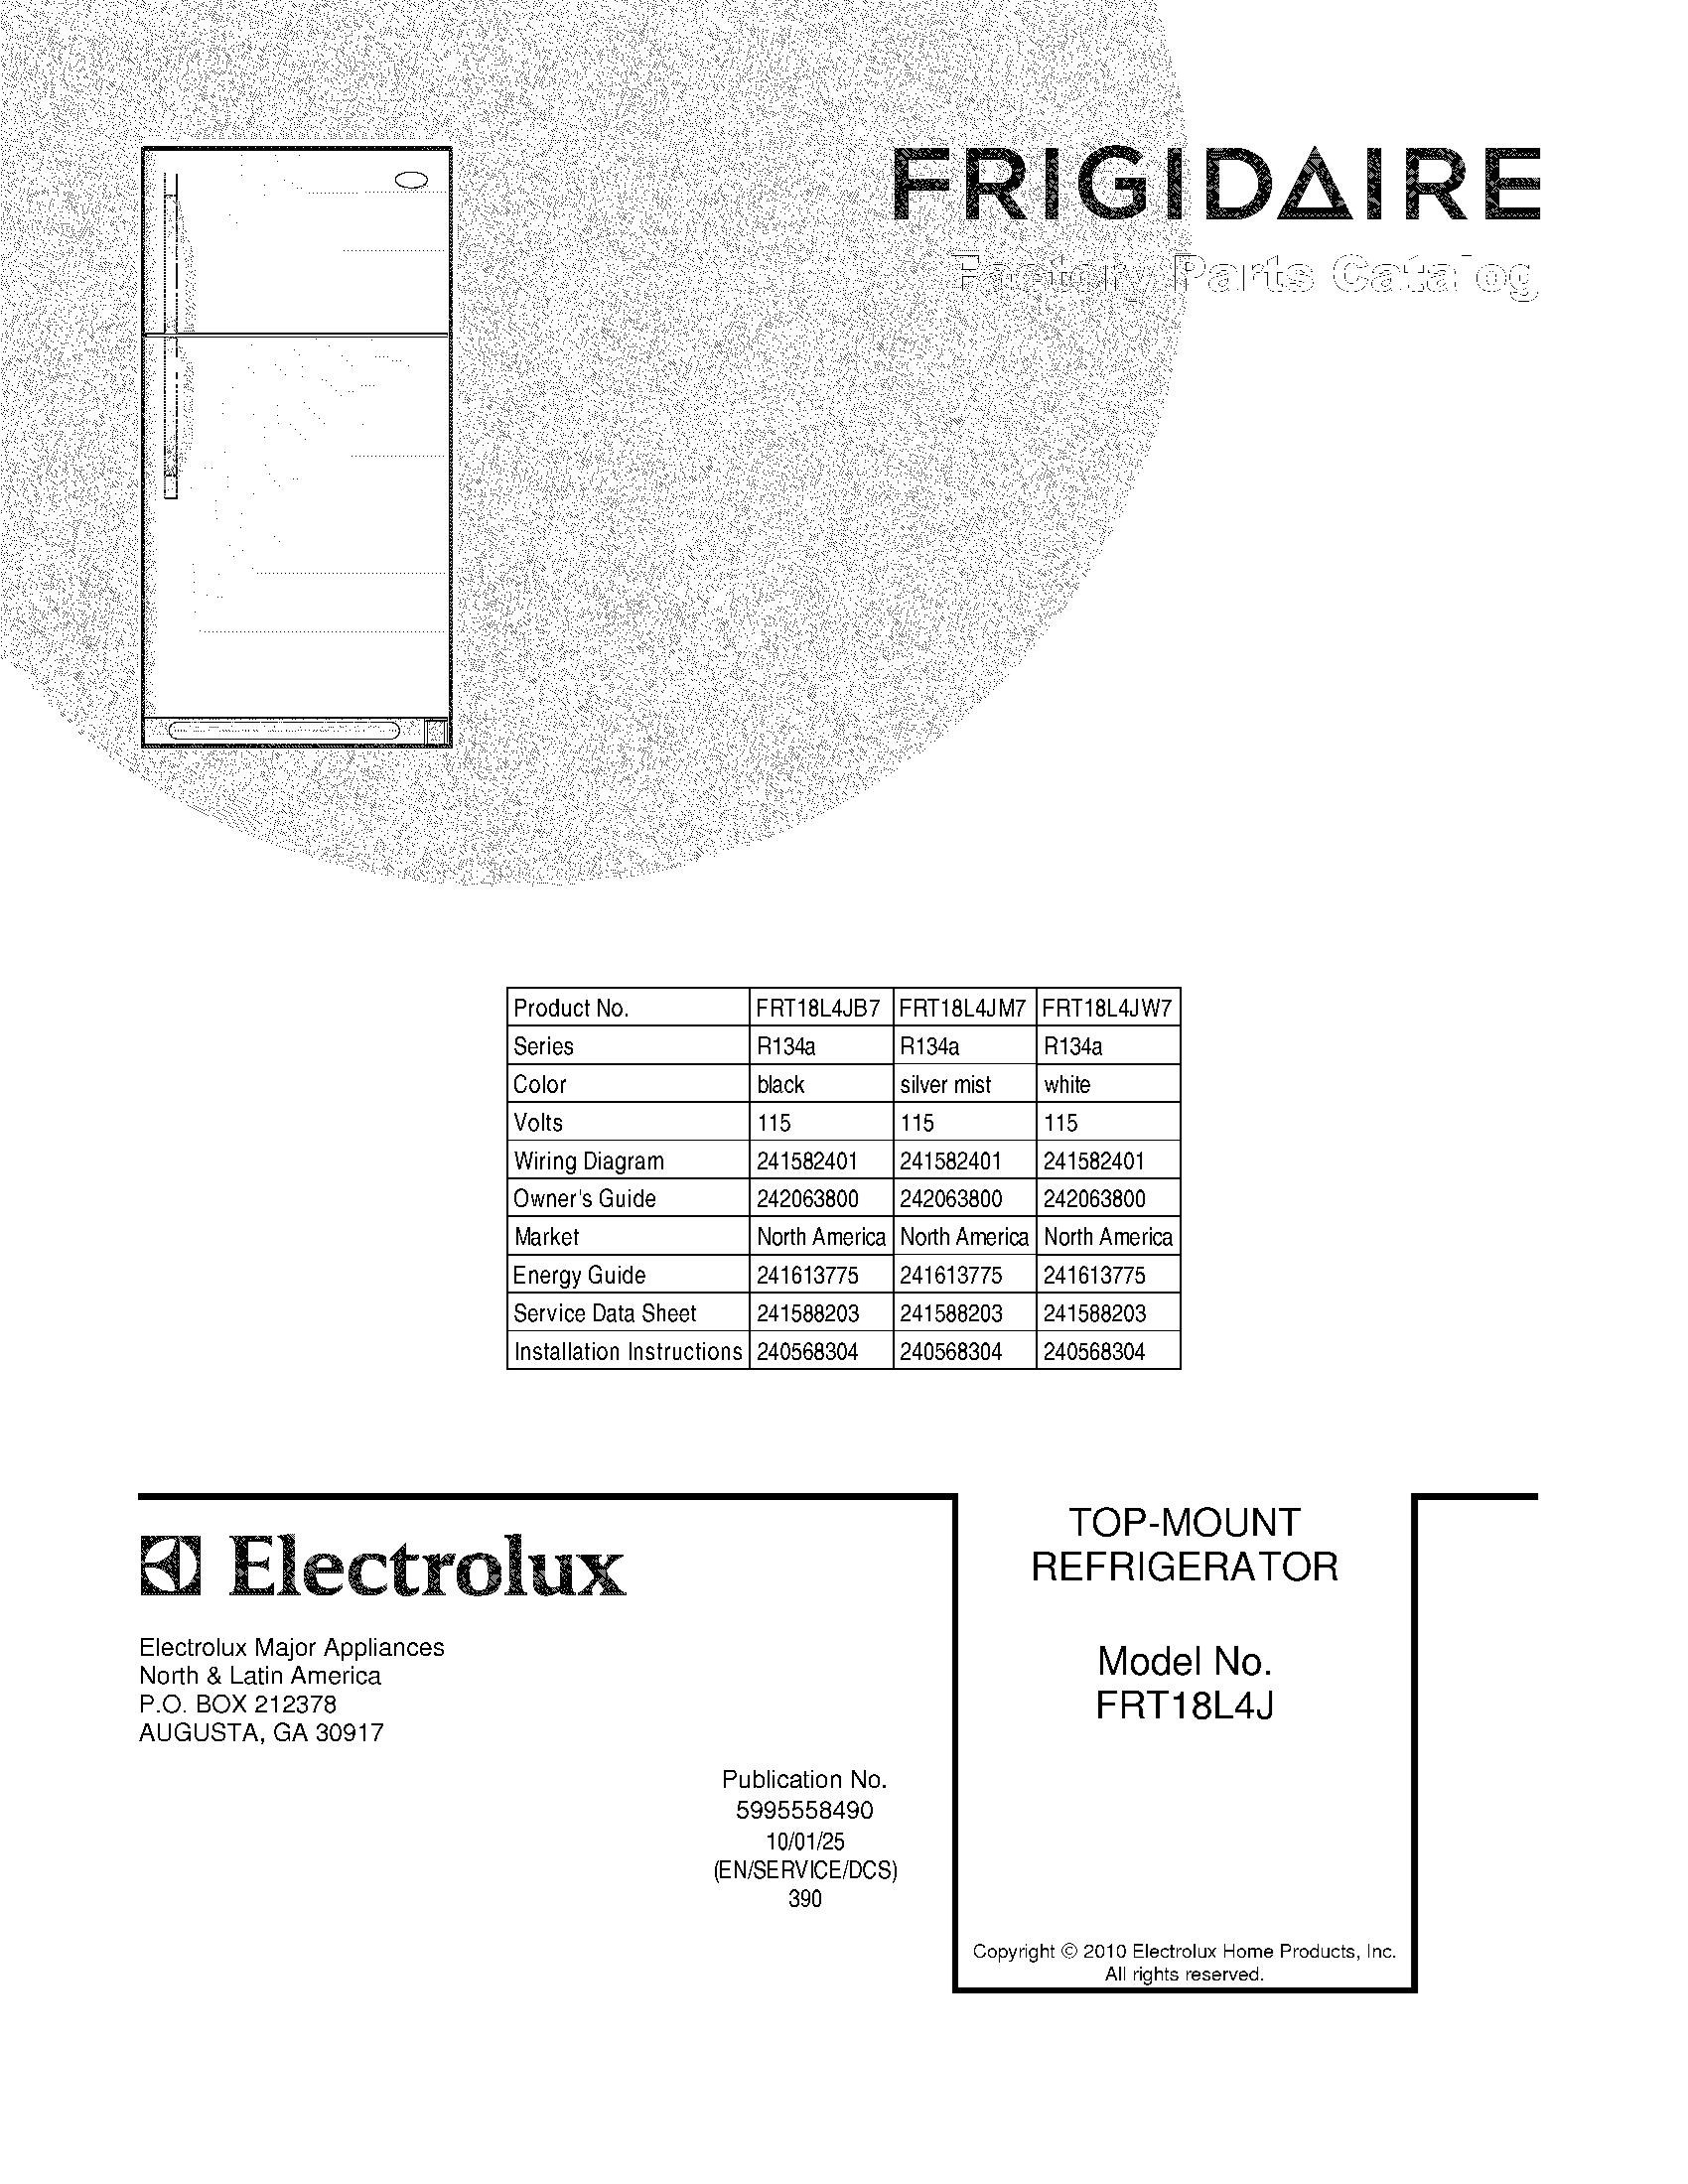 ElectroluxImg_19000101 20150717_00102196?width\=206 frigidaire refrigerator wiring schematic model frt18l4j frigidaire ice maker wiring diagram at virtualis.co